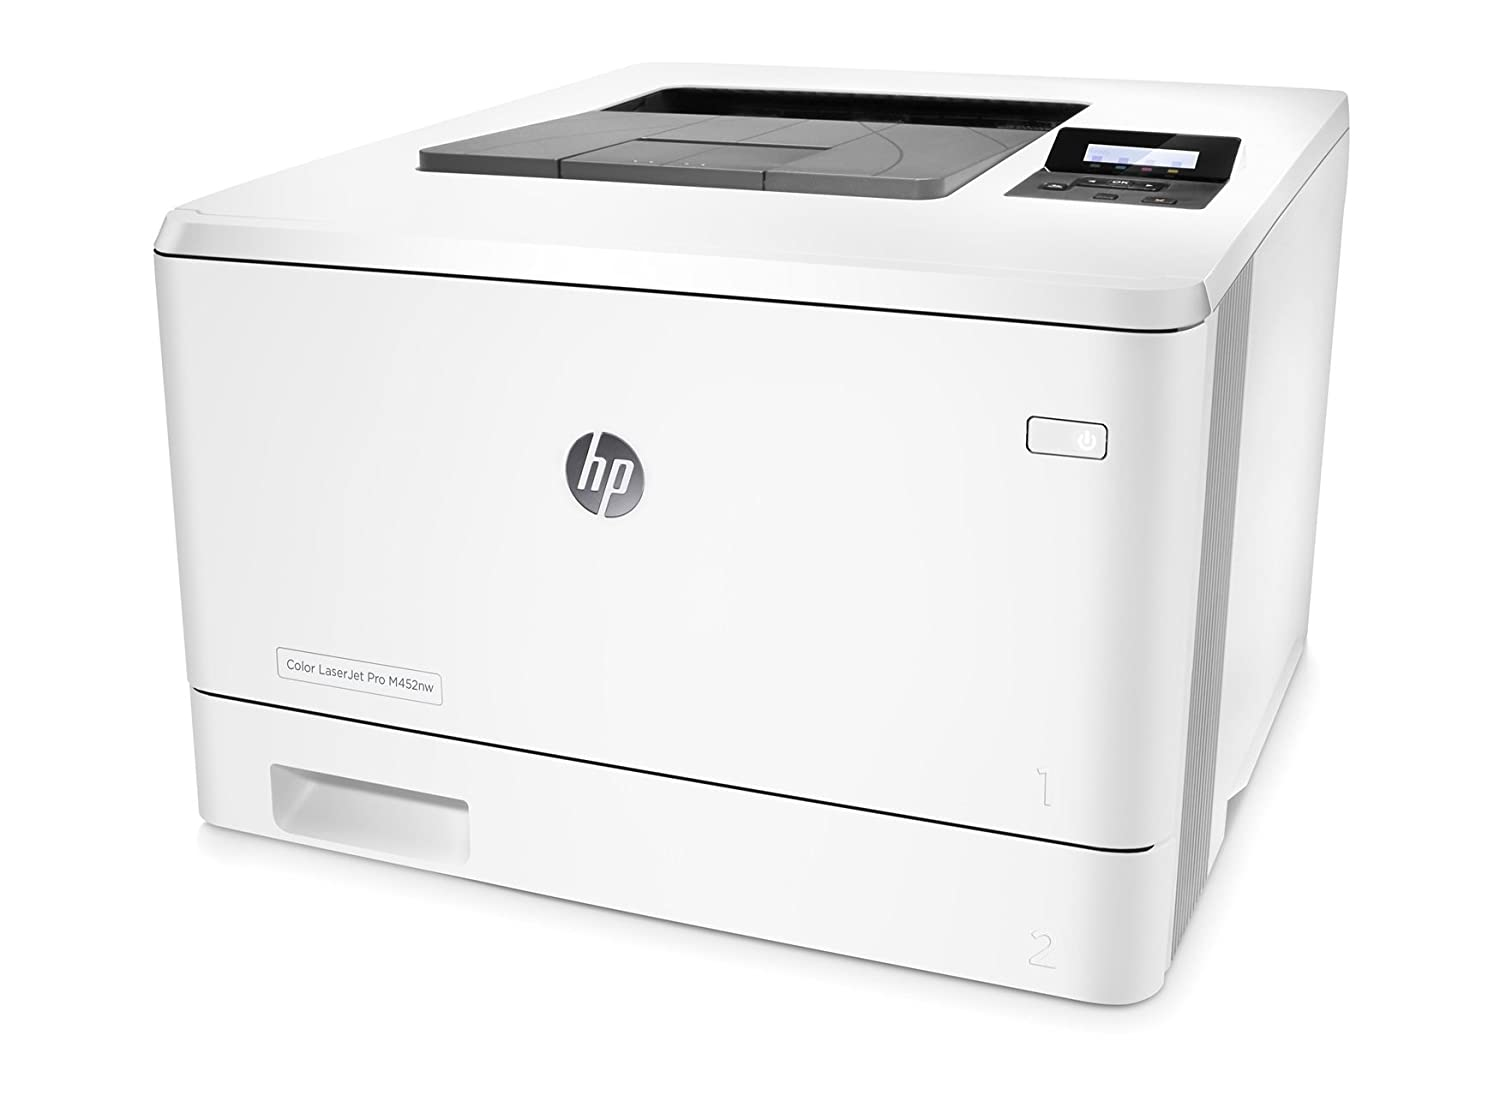 HP Color LaserJet Pro M452nw - Impresora láser a color (A4, hasta 27 ppm, 750 a 4000 páginas al mes, USB 2.0 alta velocidad, Red Gigabit Ethernet ...